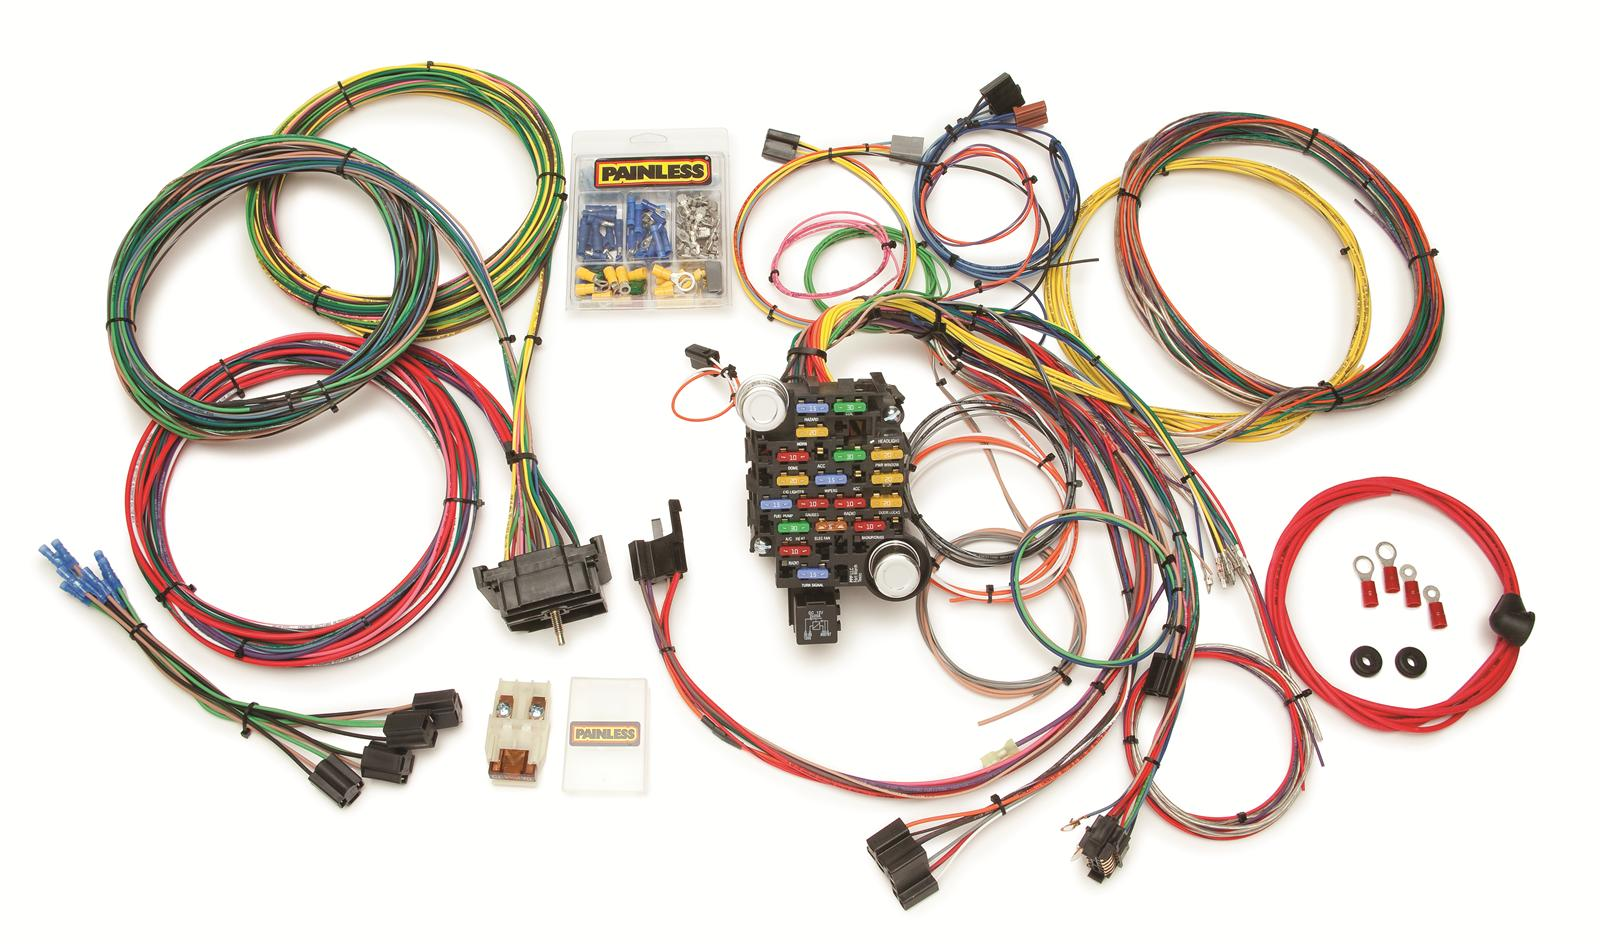 prf 10206_xl painless wiring harness 5 0 engine swap wiring harness \u2022 free Stock Car Racing Wiring Diagrams at mifinder.co